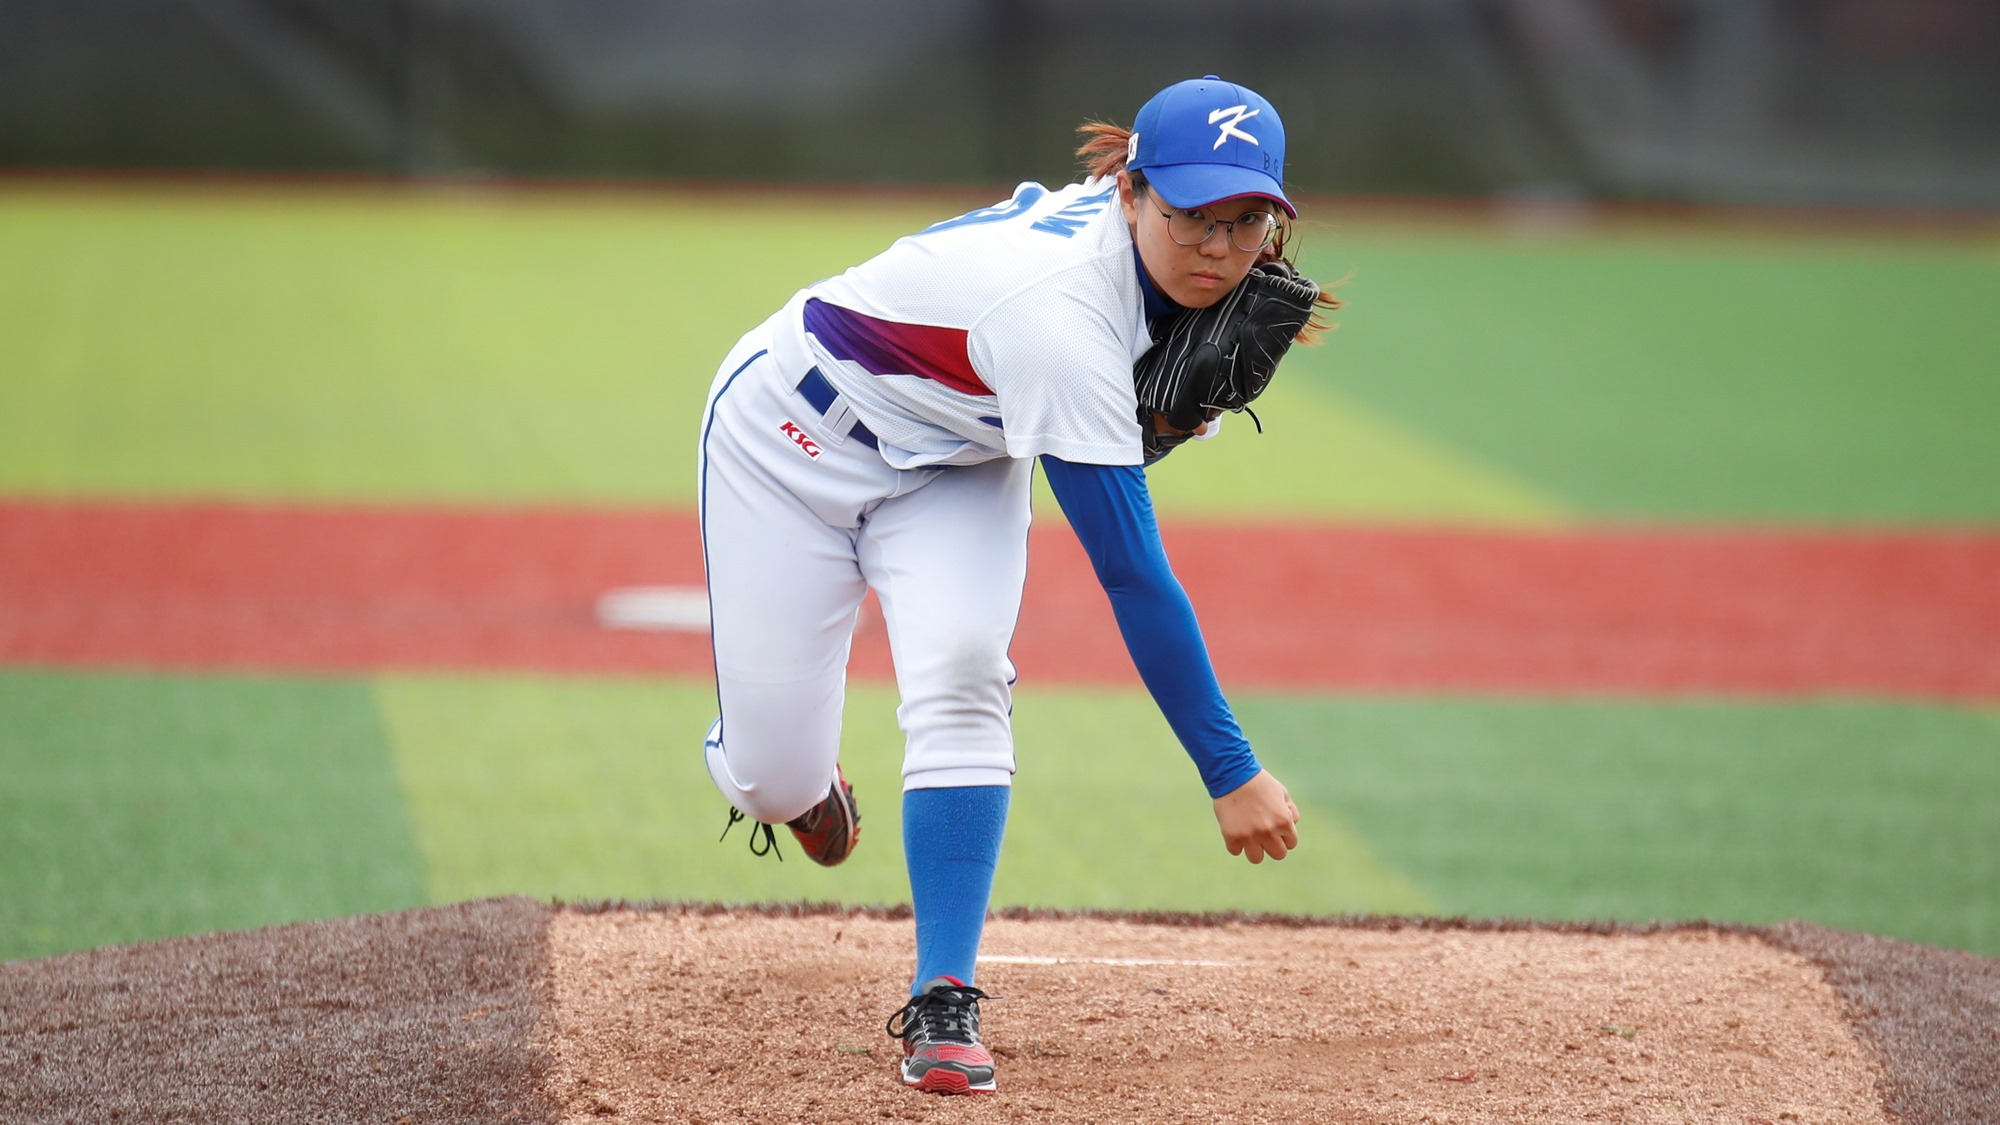 Defensive errors proved costly also for Korea. Kim Rakyung picked the victory